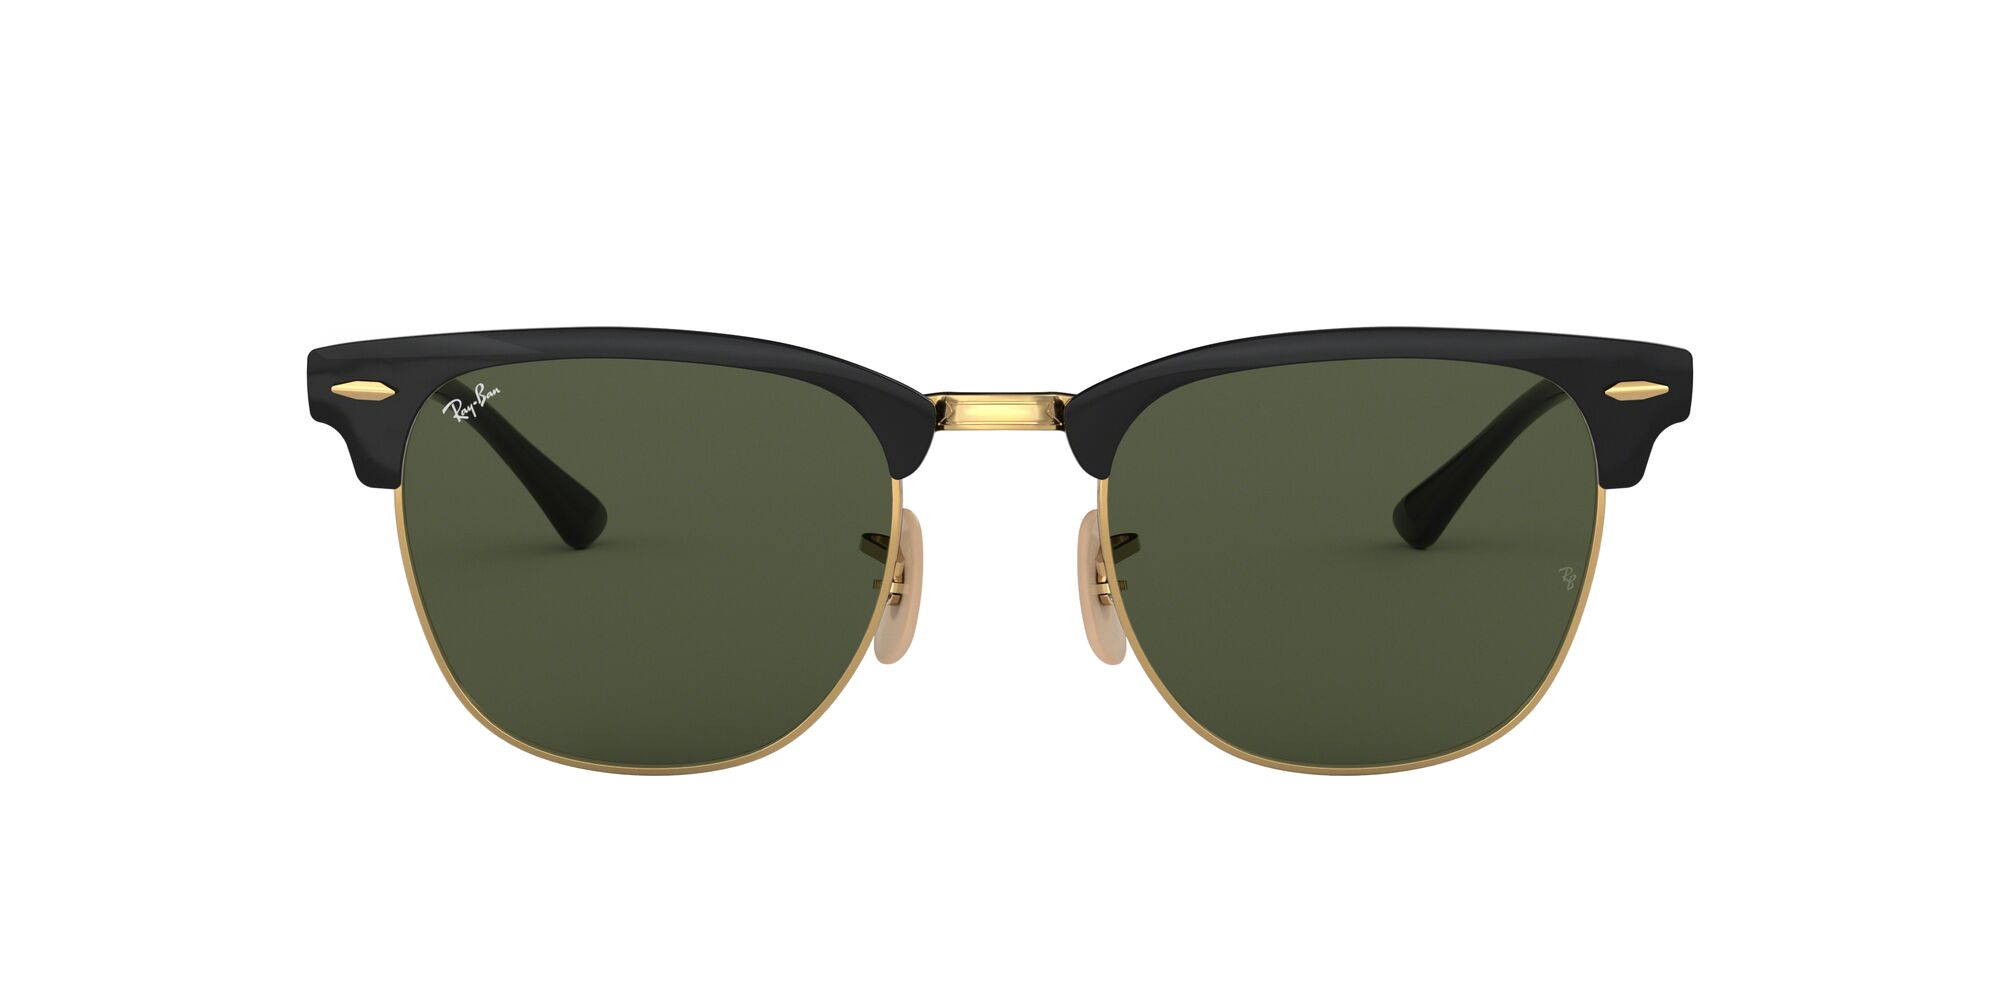 Front Ray-Ban Ray-Ban 0RB3716 187 51/21 Goud/Groen